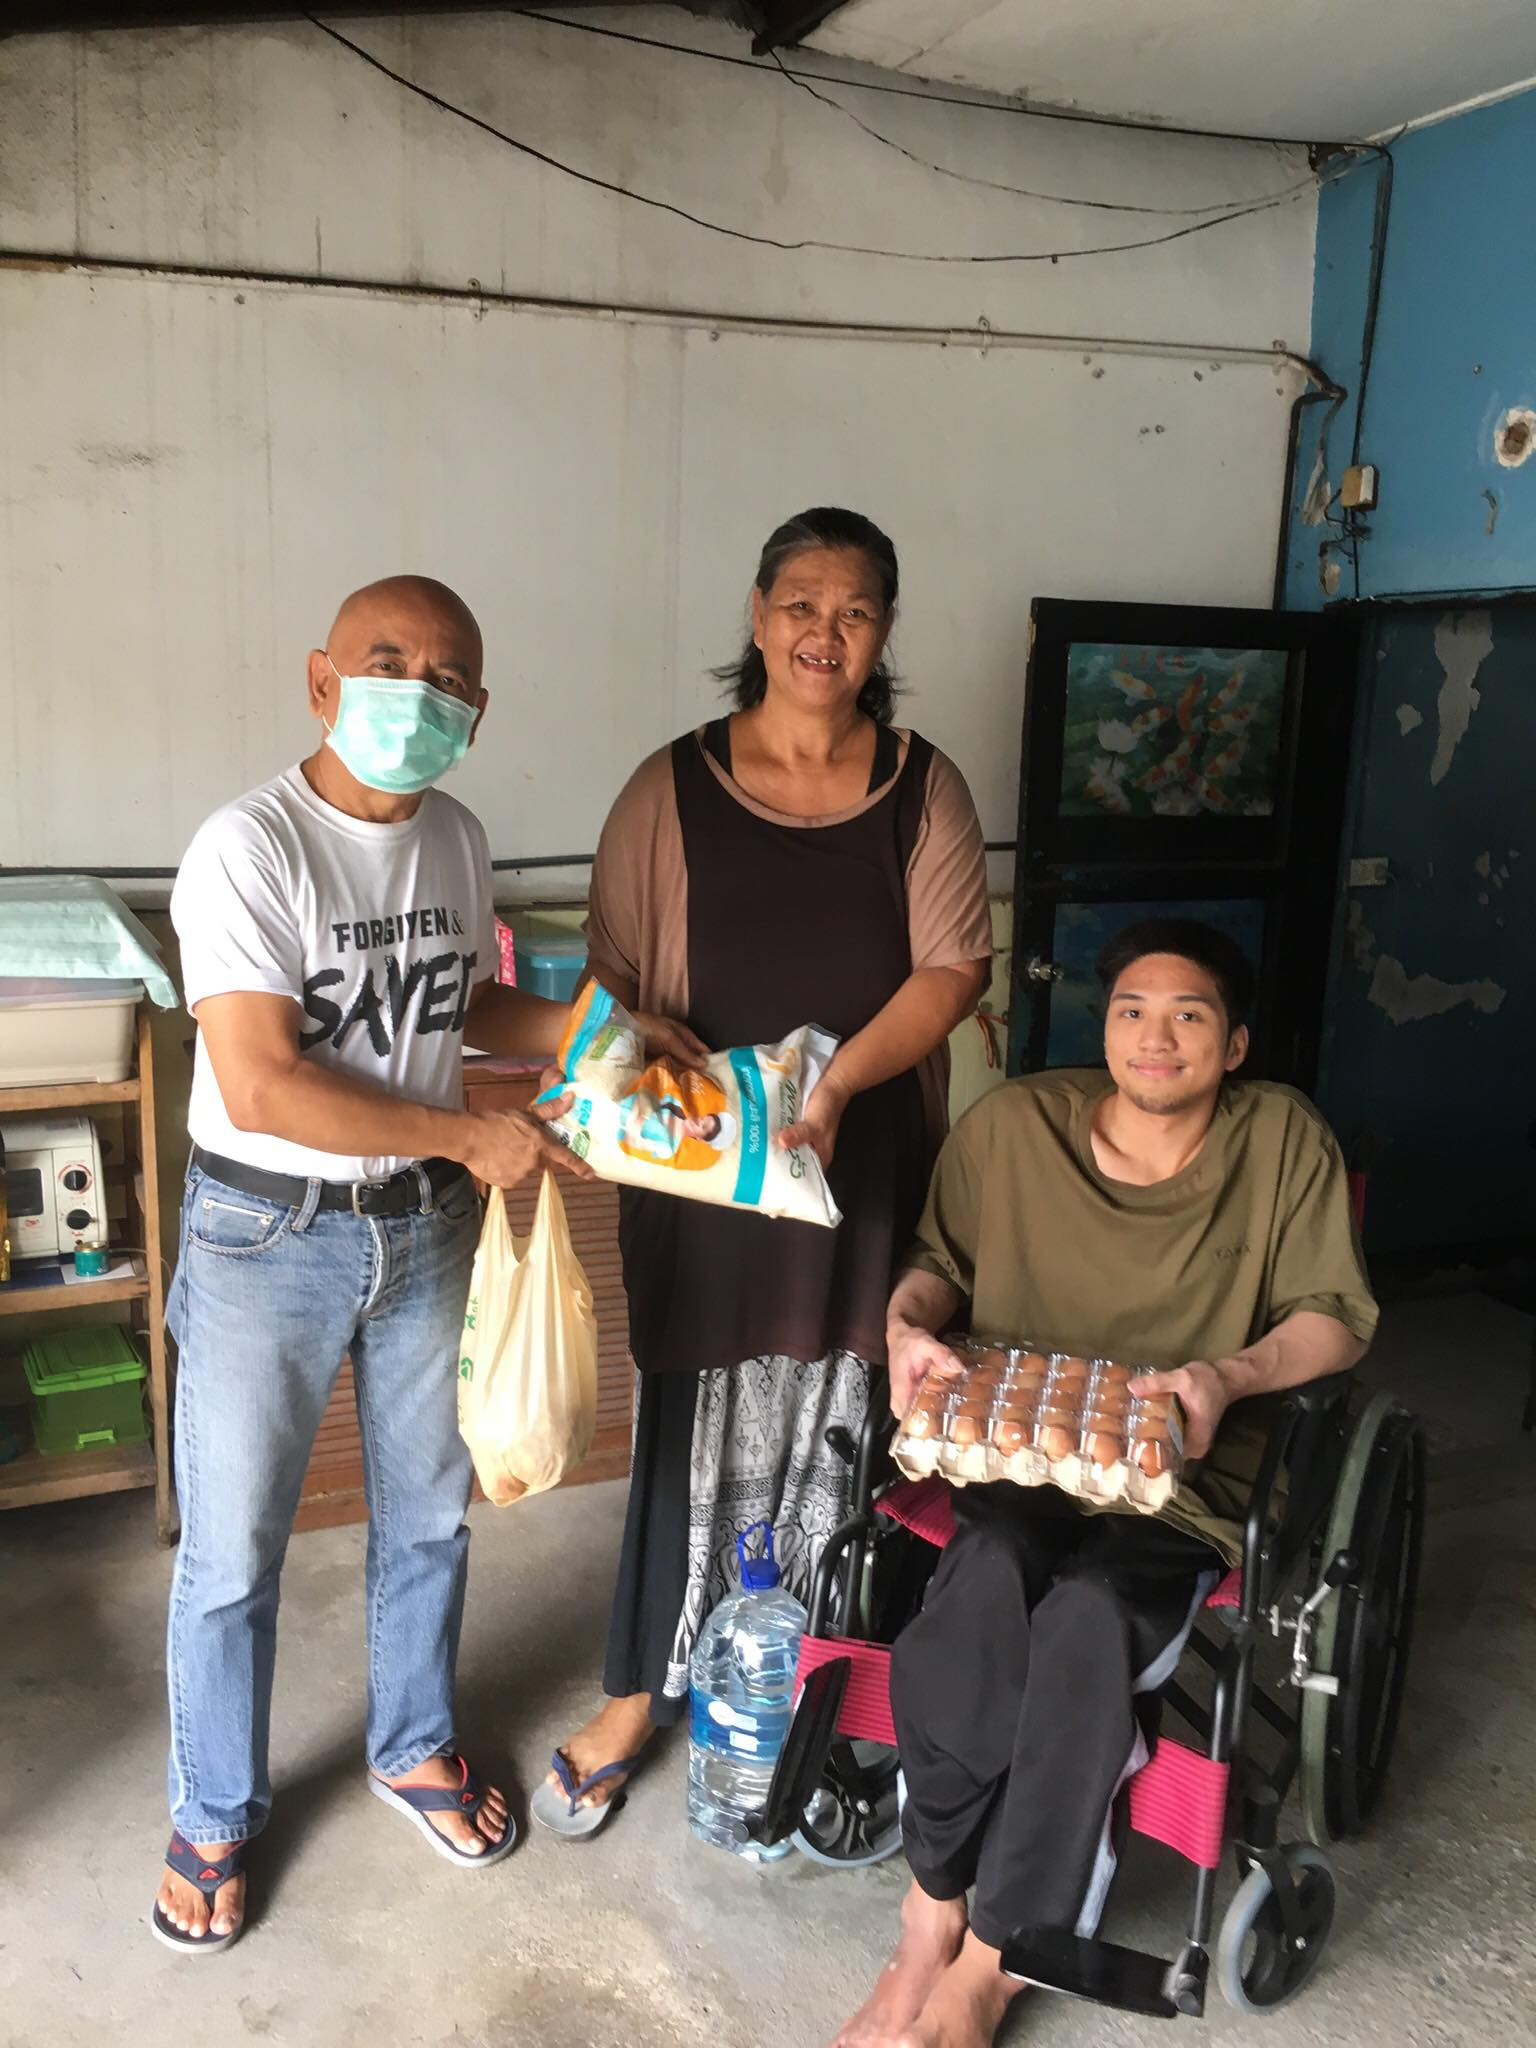 Albert is giving relief goods to a family member of Don Muang Church